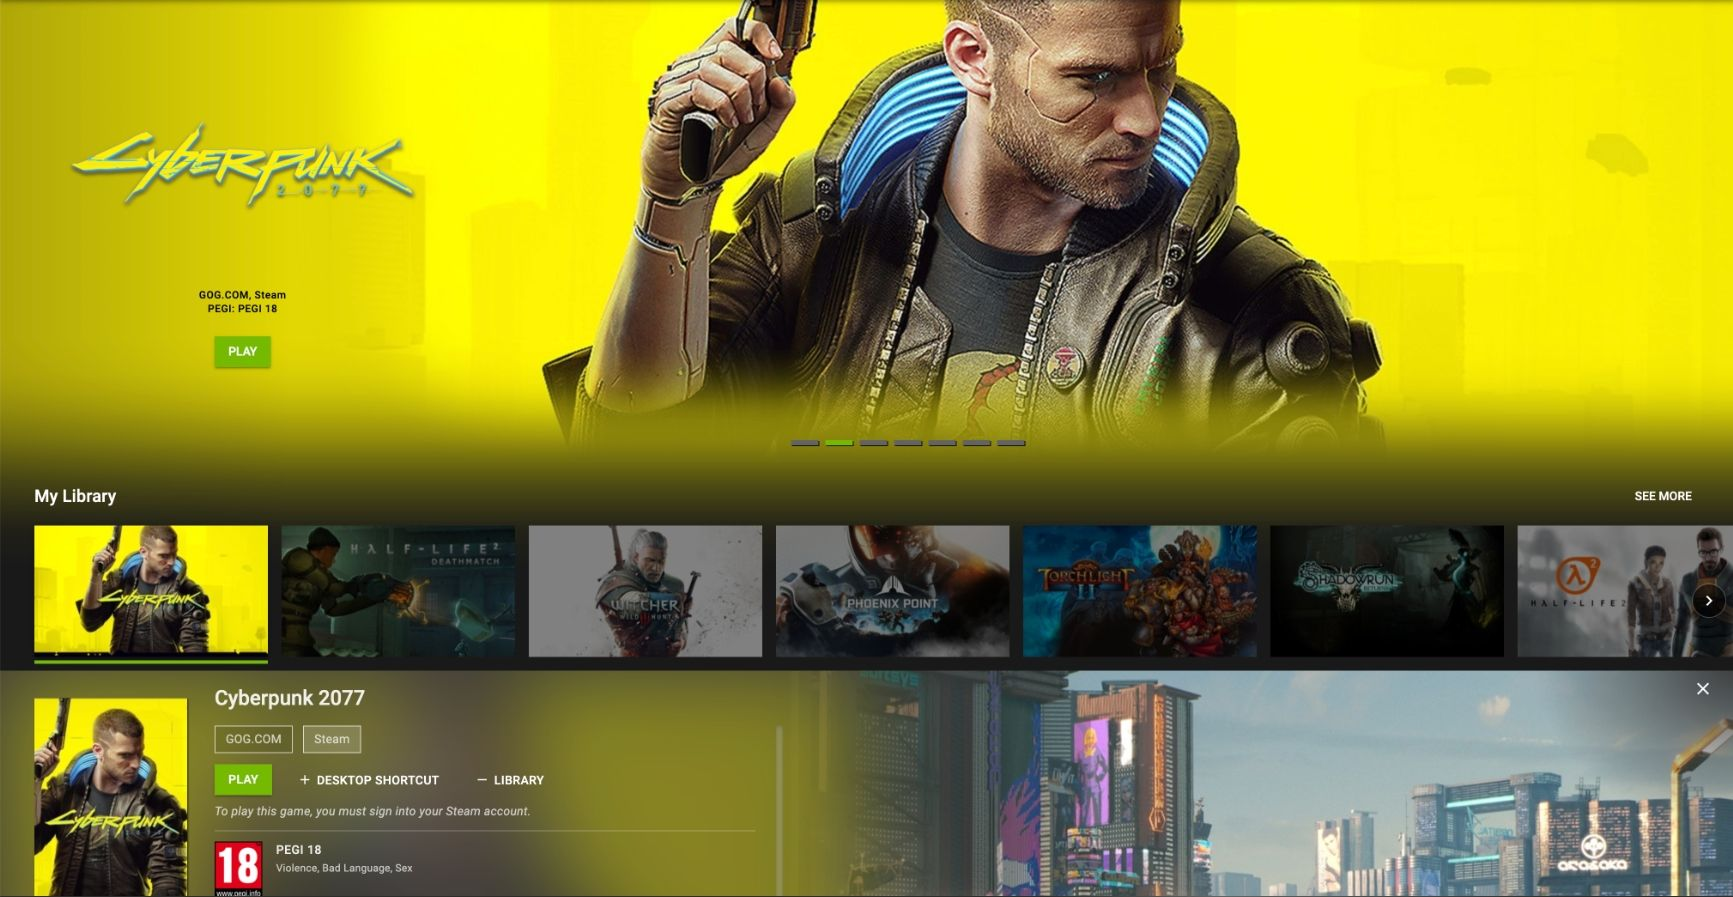 Cyberpunk 2077 on nVIDIA GeForceNOW!